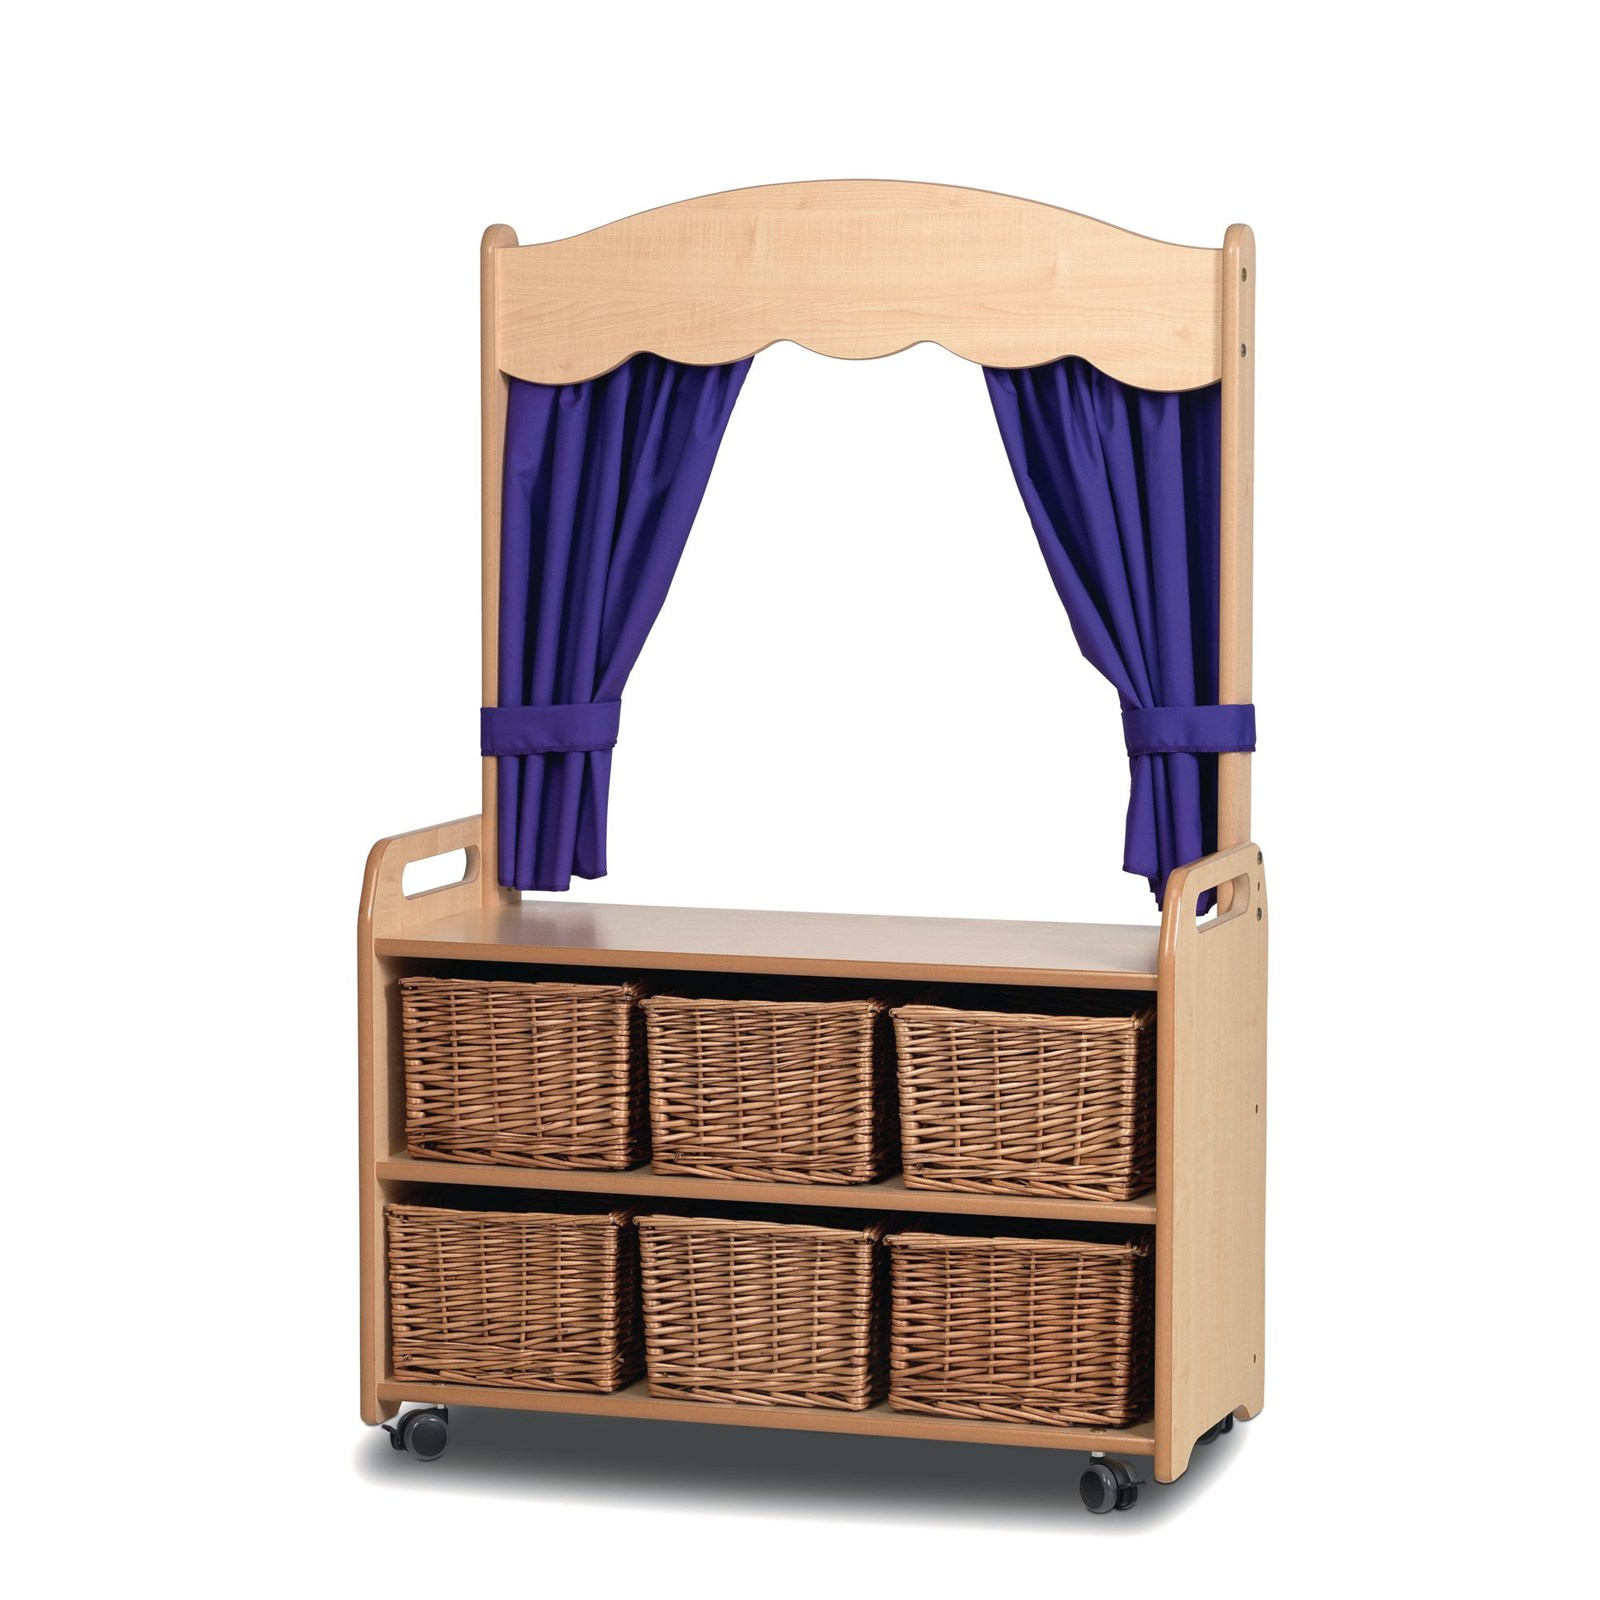 Playscapes Mobile Tall Unit Theatre 6 Wicker Basket